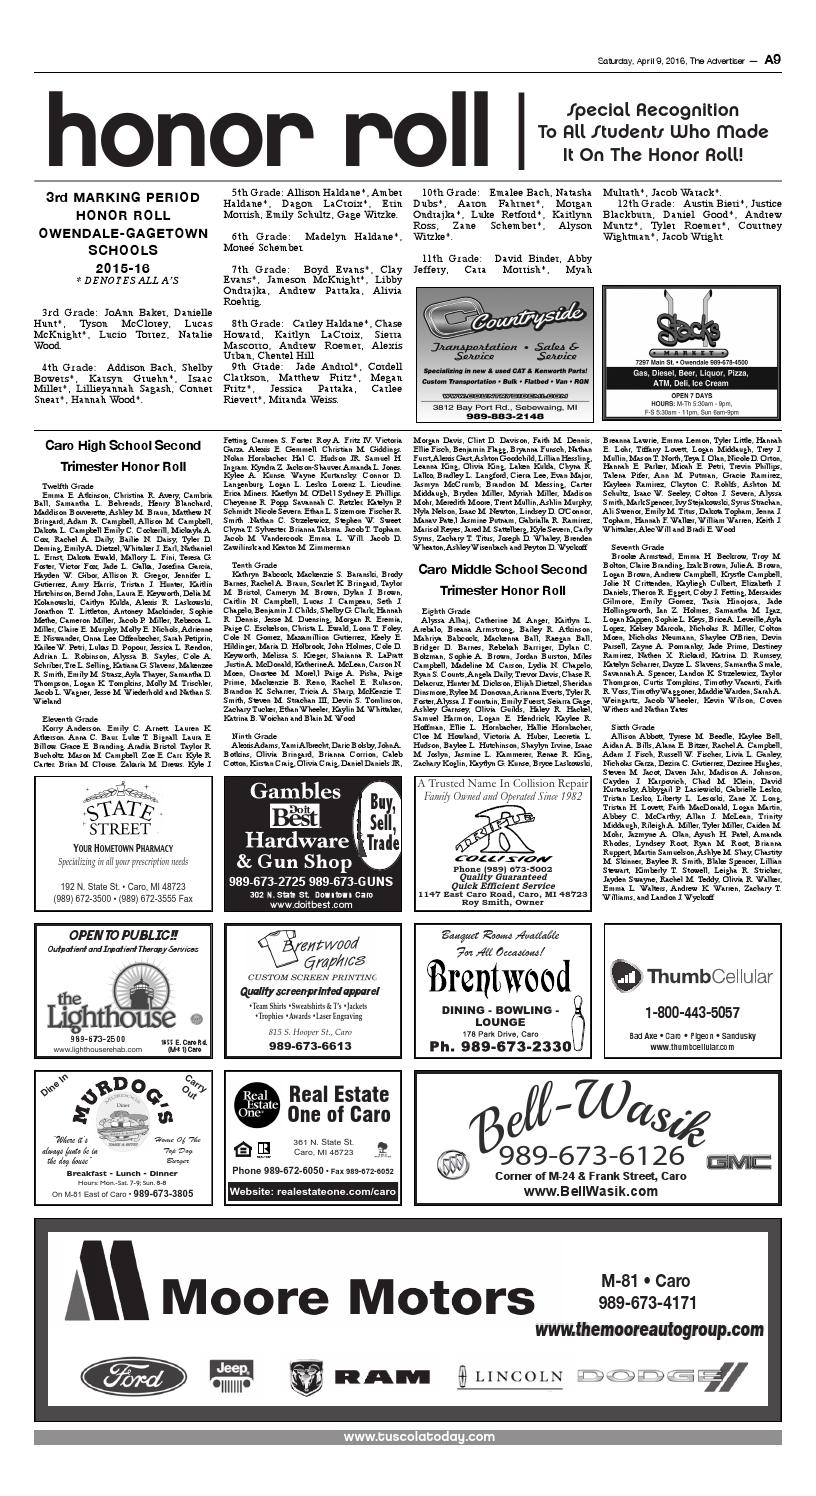 Tca 4 9 16 full edition by Tuscola County Advertiser - issuu